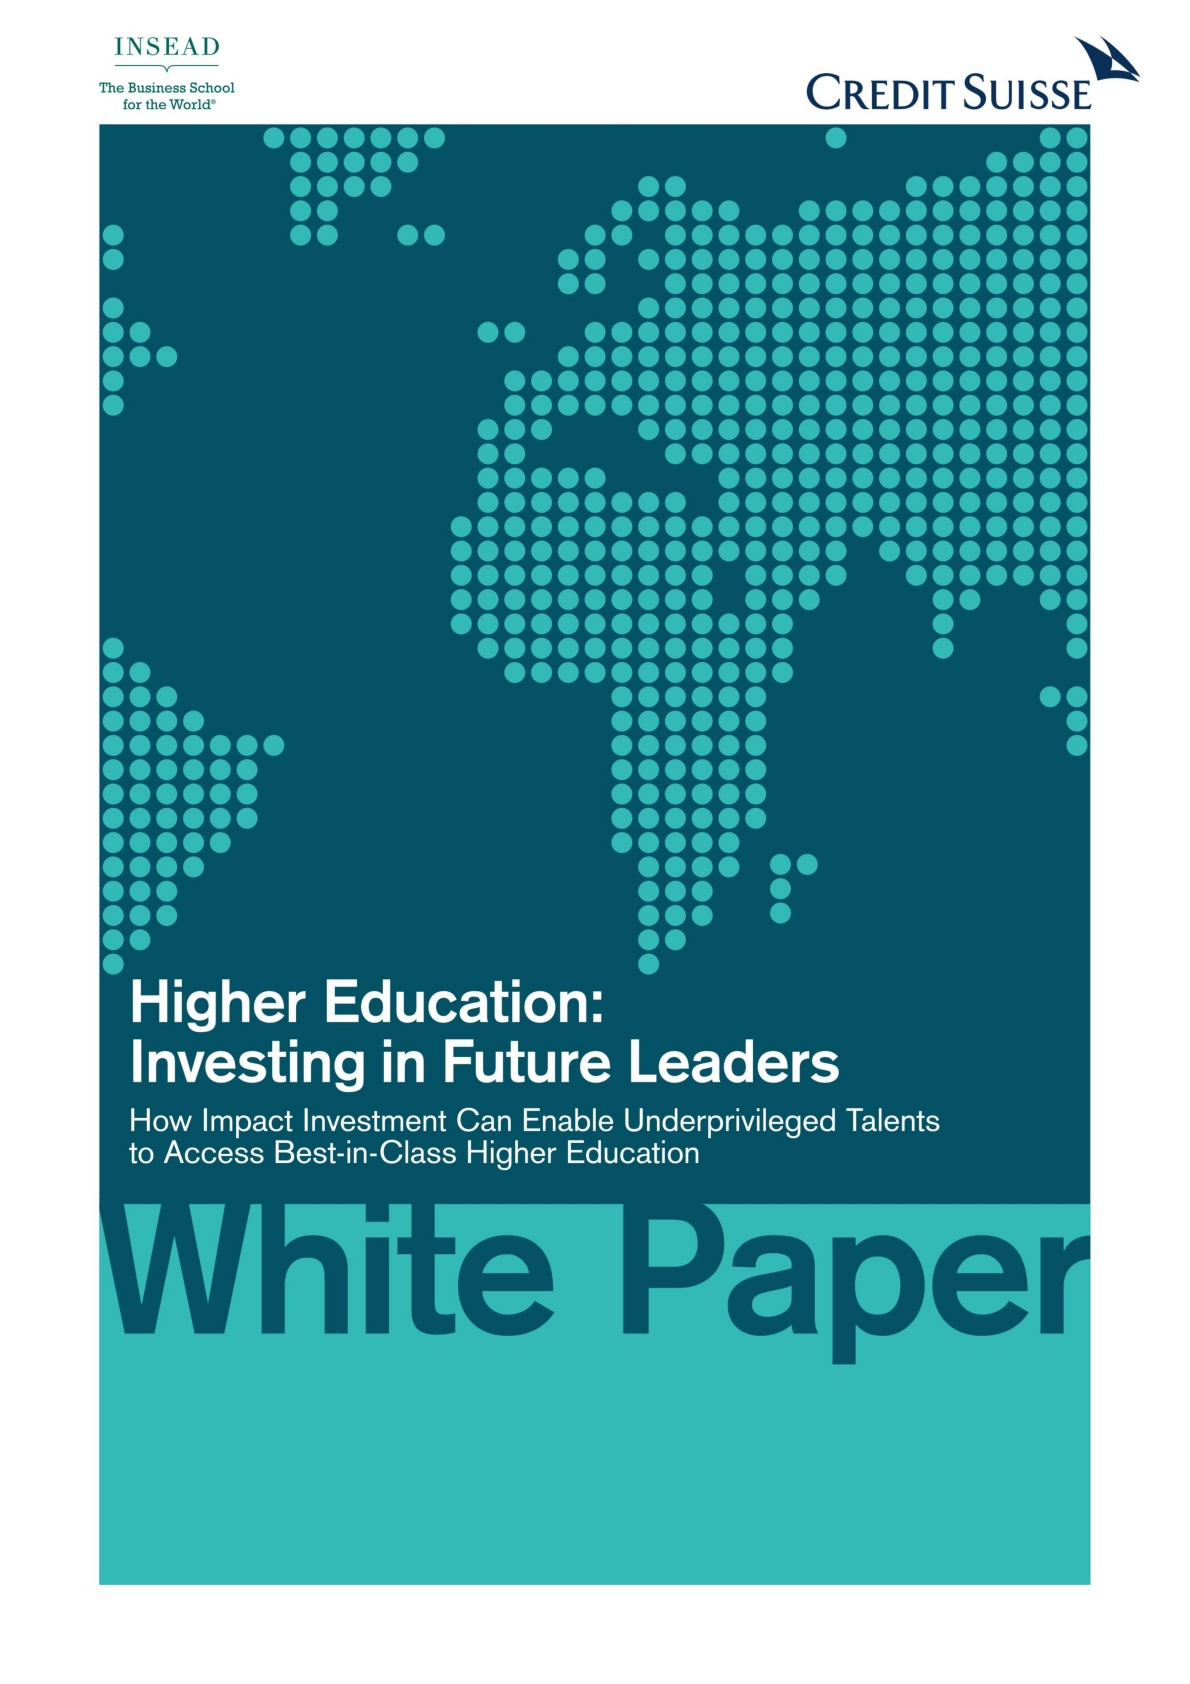 White Paper Credit Suisse Higher Education